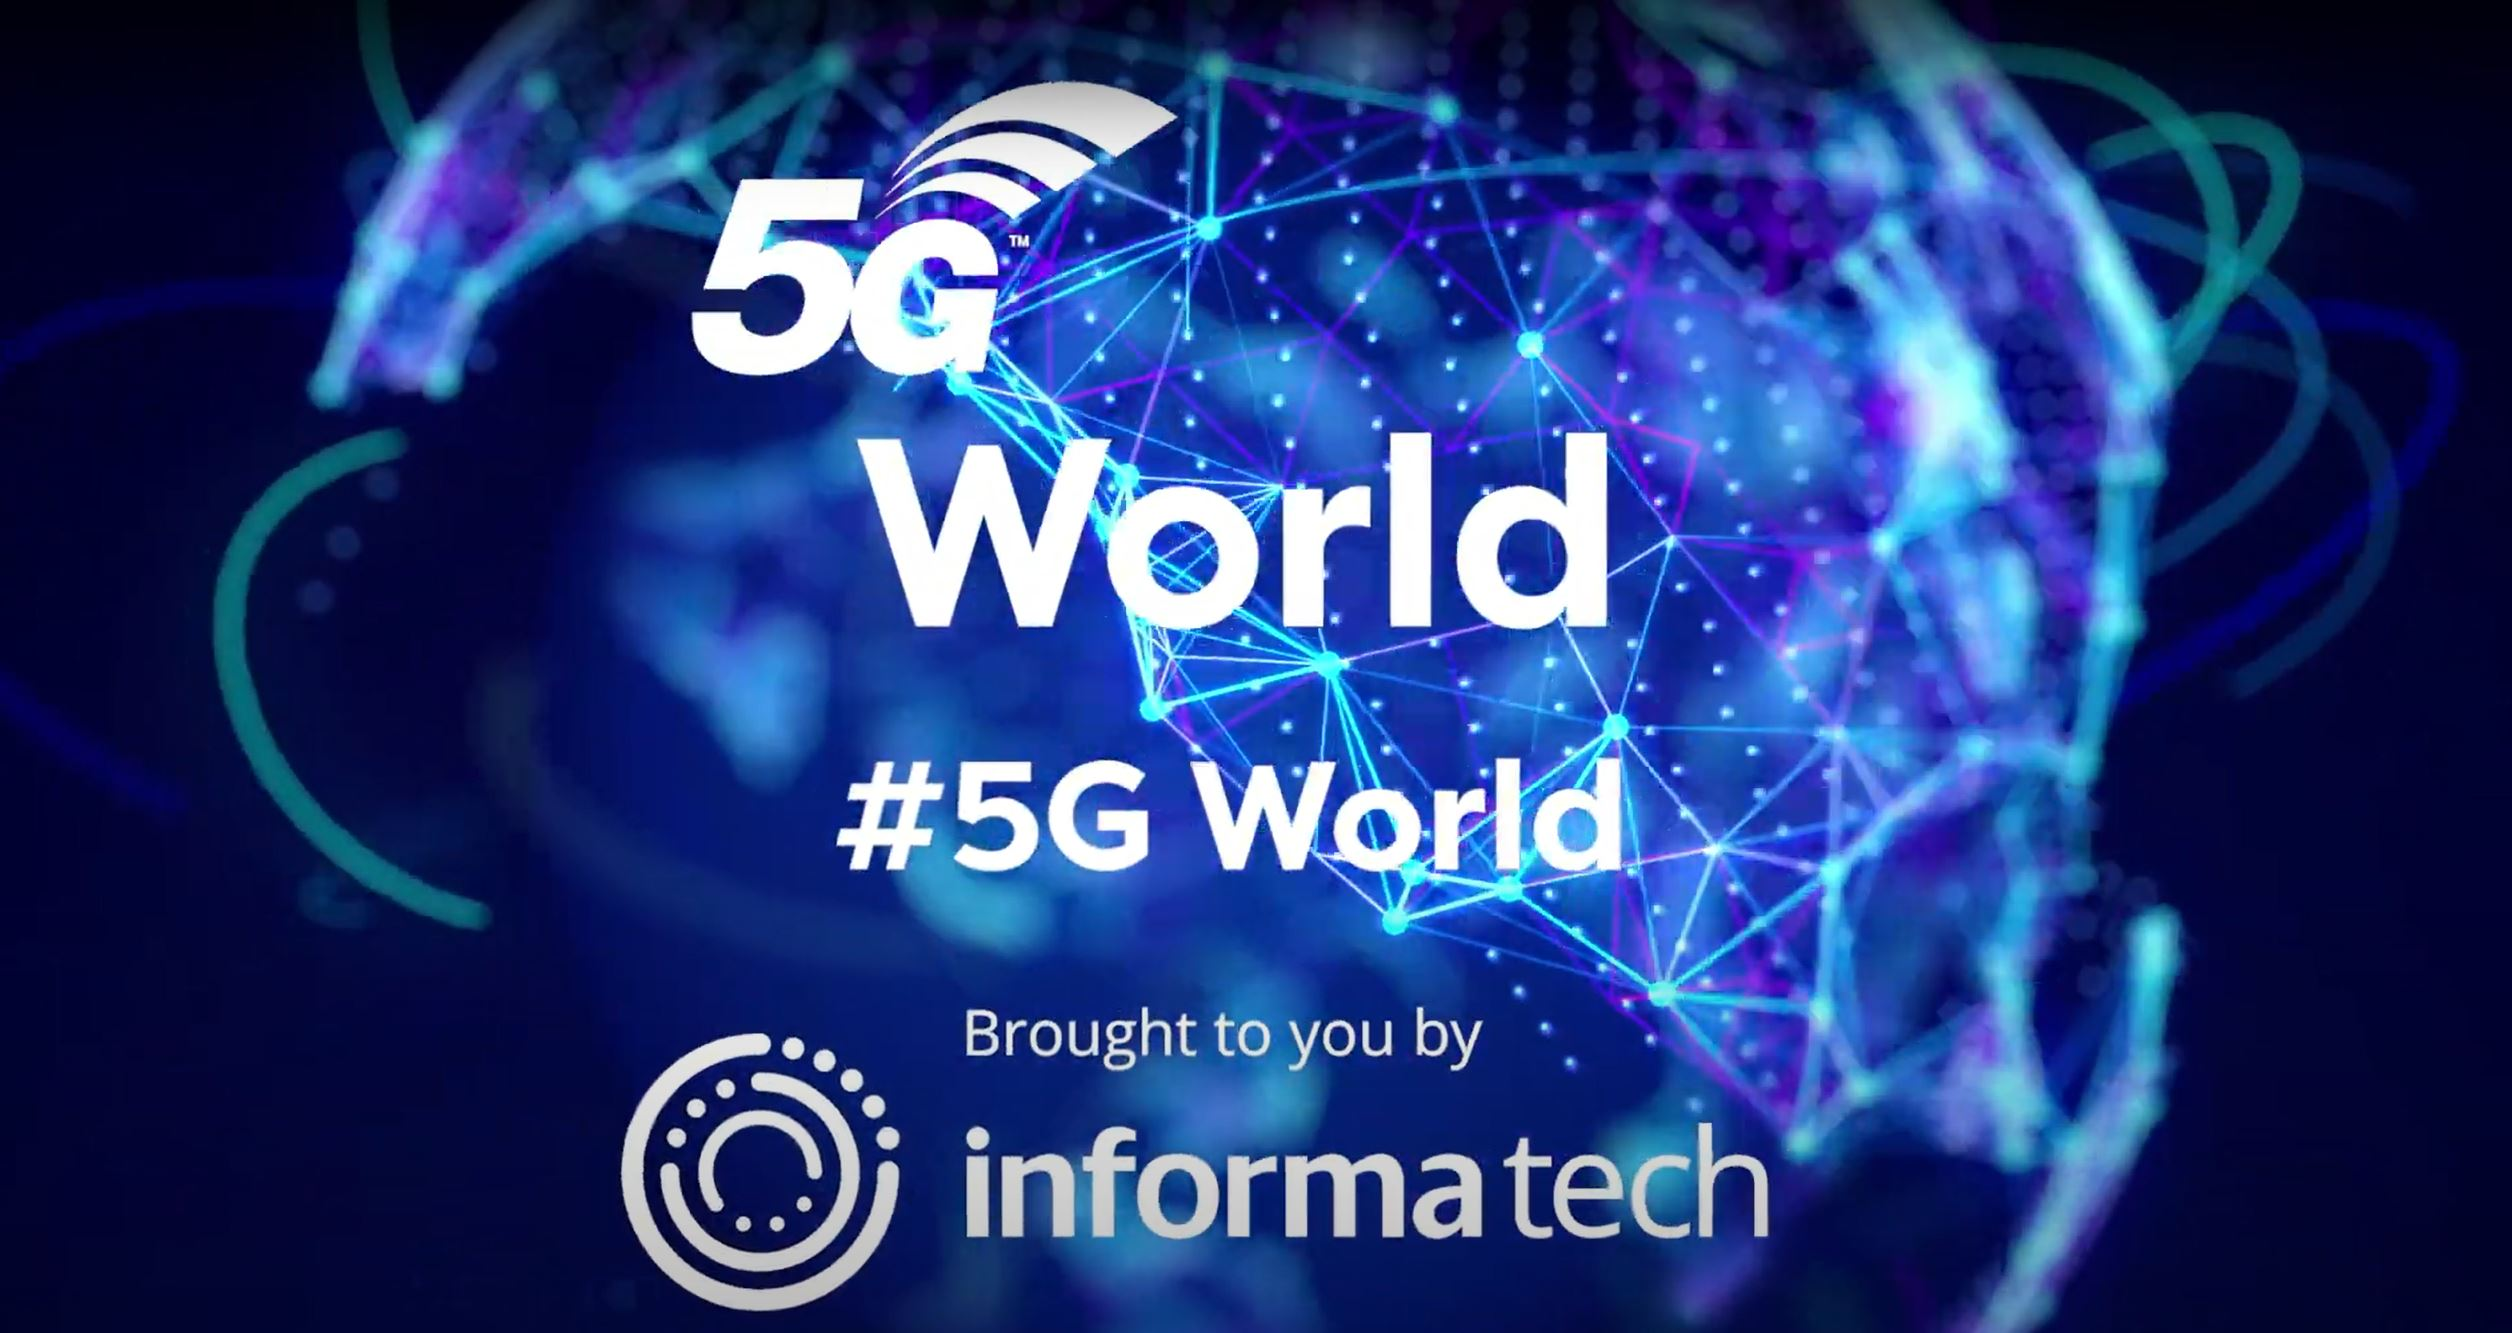 5G world, British Business Bank, 5g, 5g-encode, Bristol , Bristol city, University of Bristol, private networks, private LTE network, private 5G network, network slicing, network splicing, network visualization , networking, GUI, network topology, dashboard, wireless, LTE, LAN, 5G, Wi-Fi, mobile, network automation, network optimisation, network visibility, network monitoring